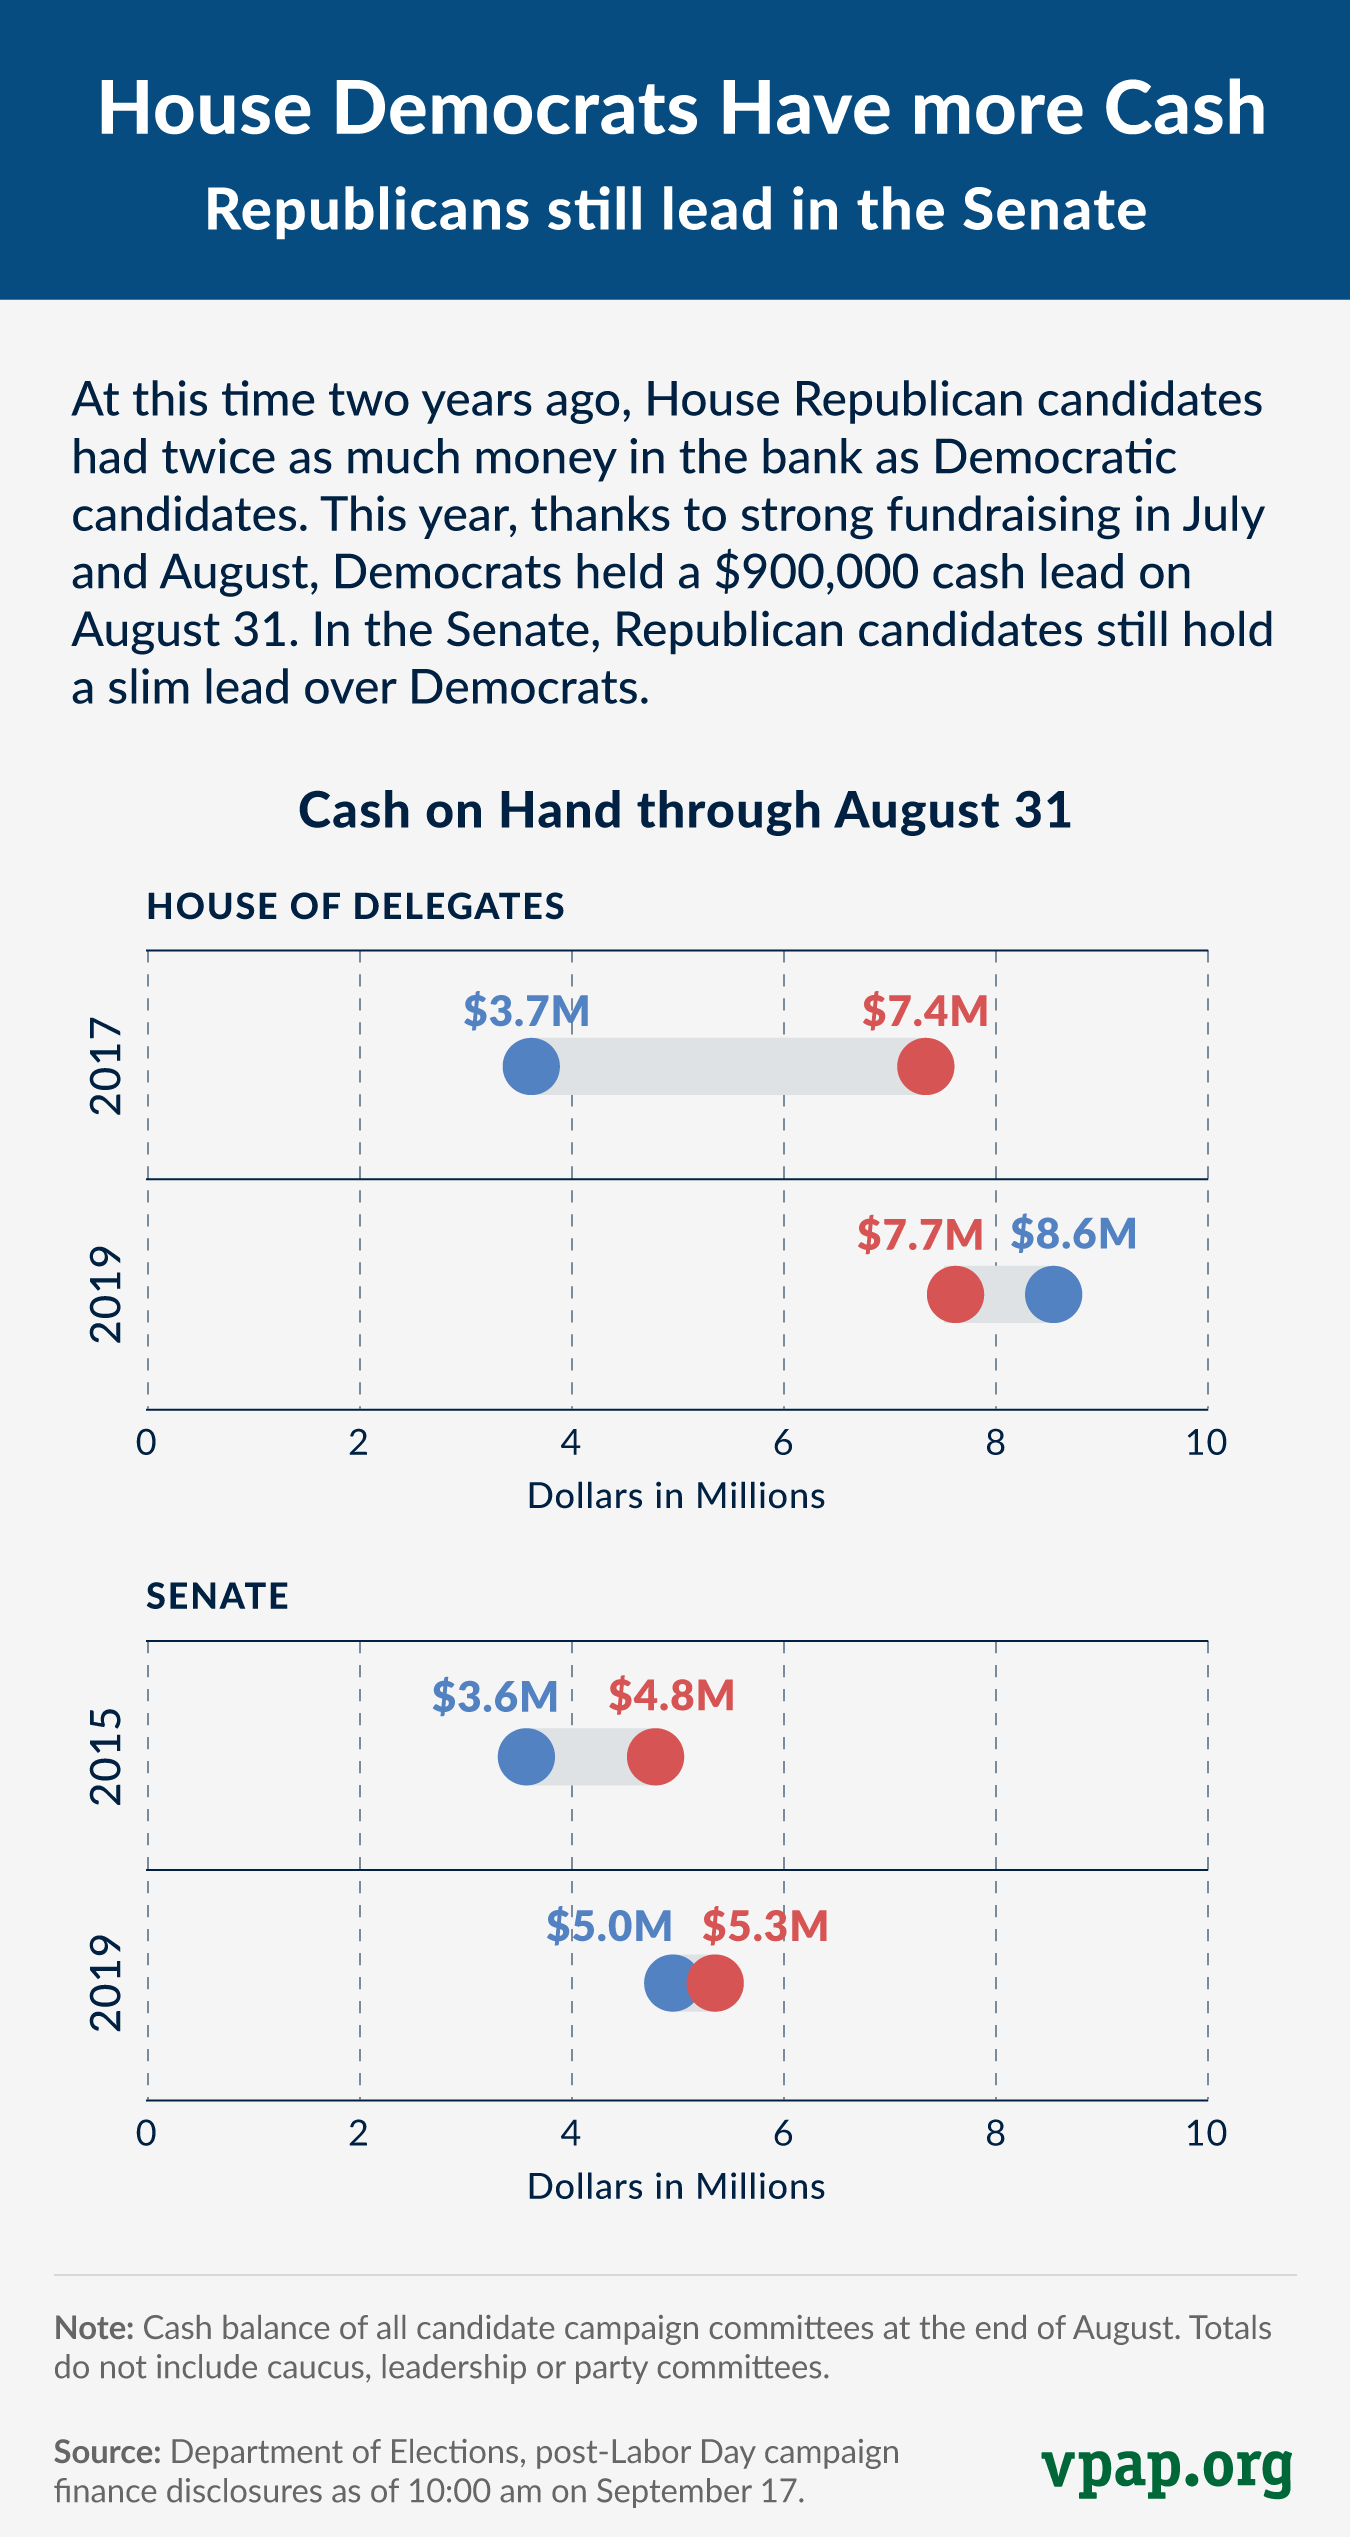 Party Cash Gap as of August 31